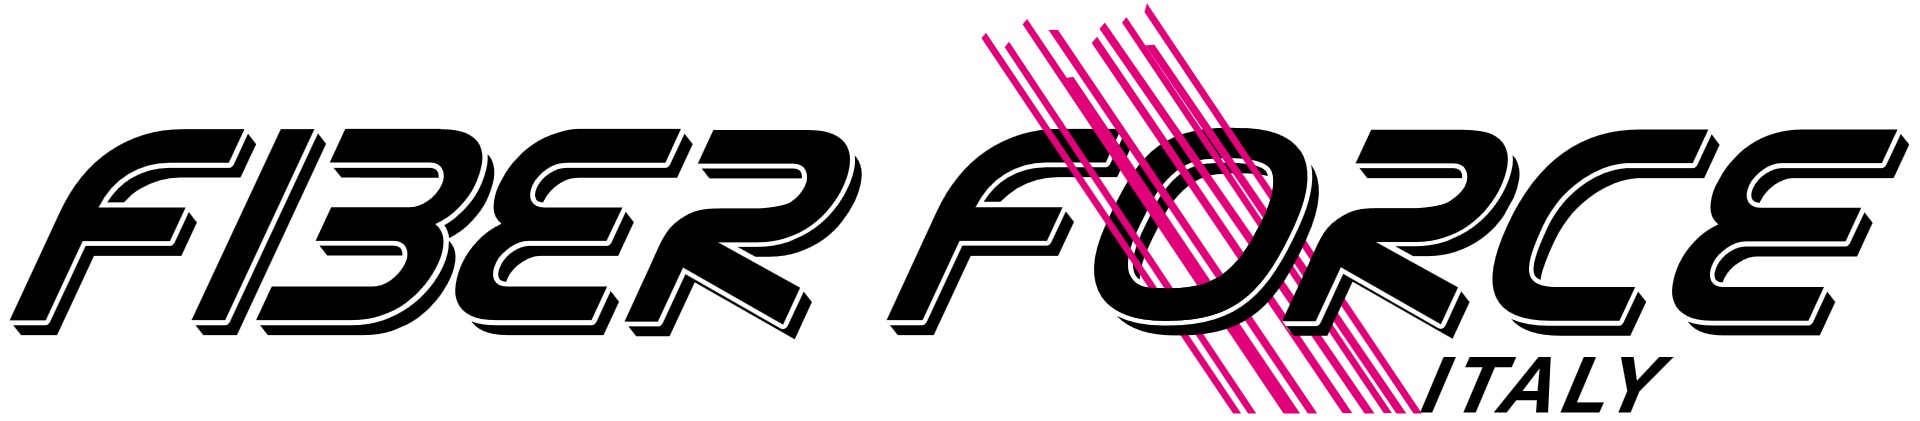 Fiber Force Logo